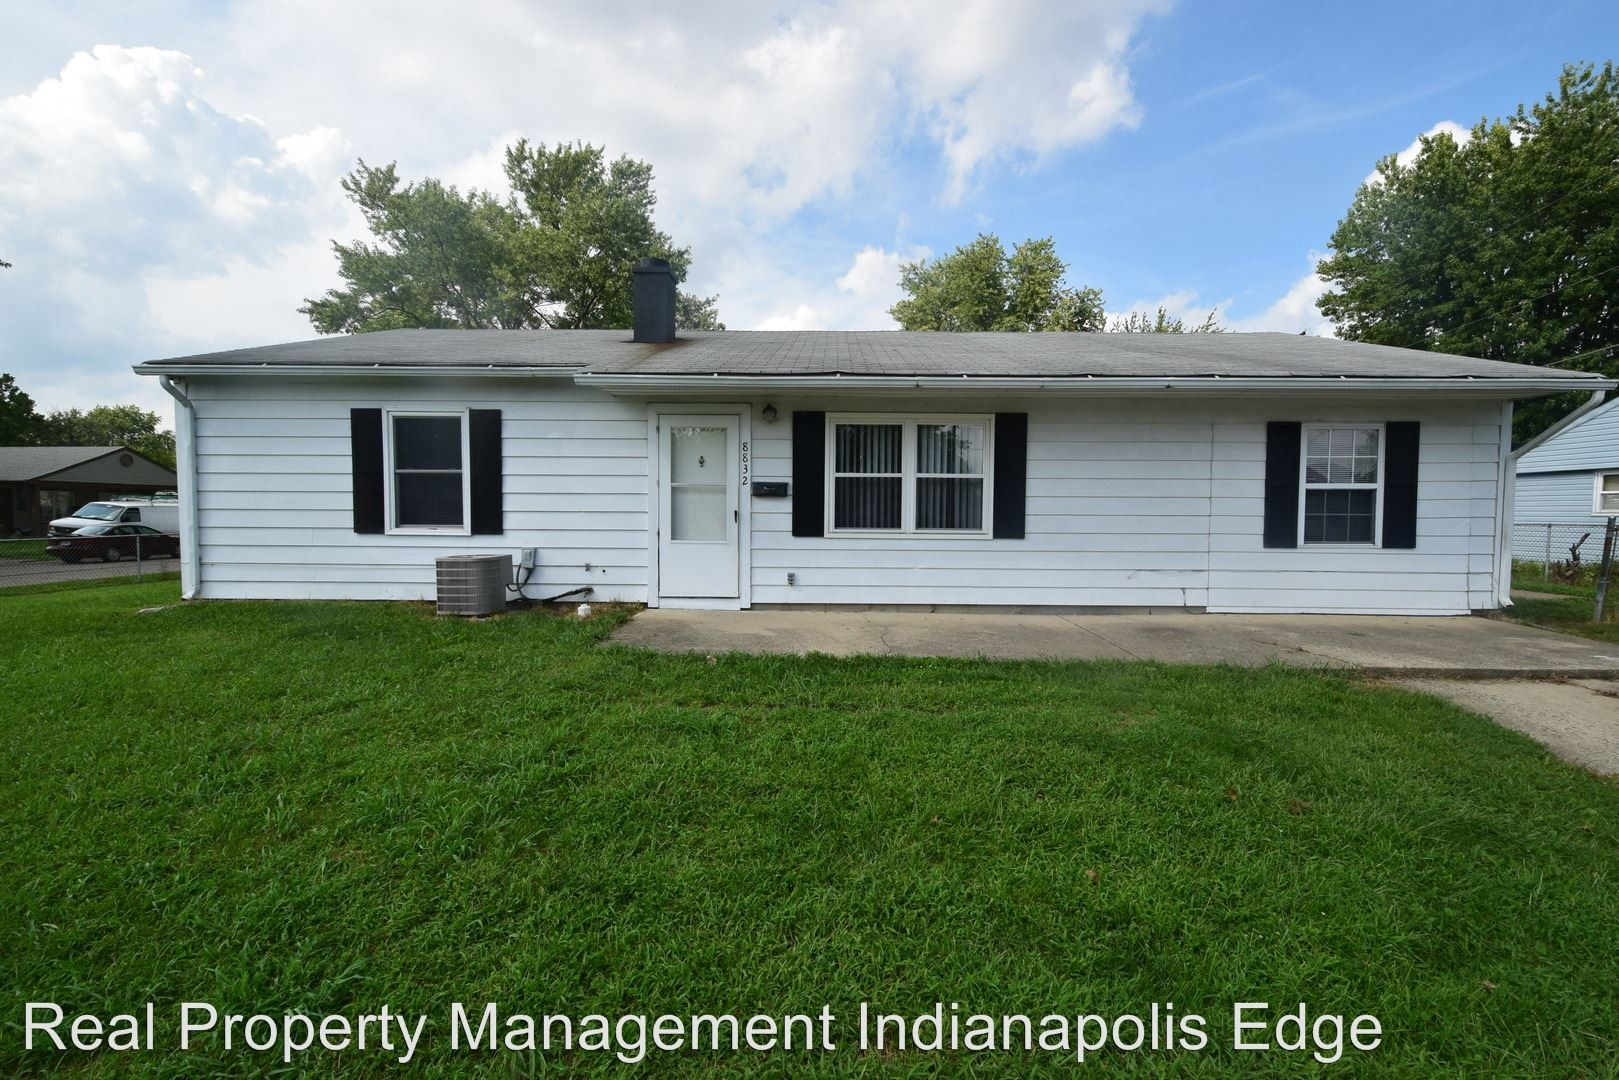 8832 roy rd indianapolis in 46219 4 bedroom apartment 4 bedroom apartments for rent indianapolis